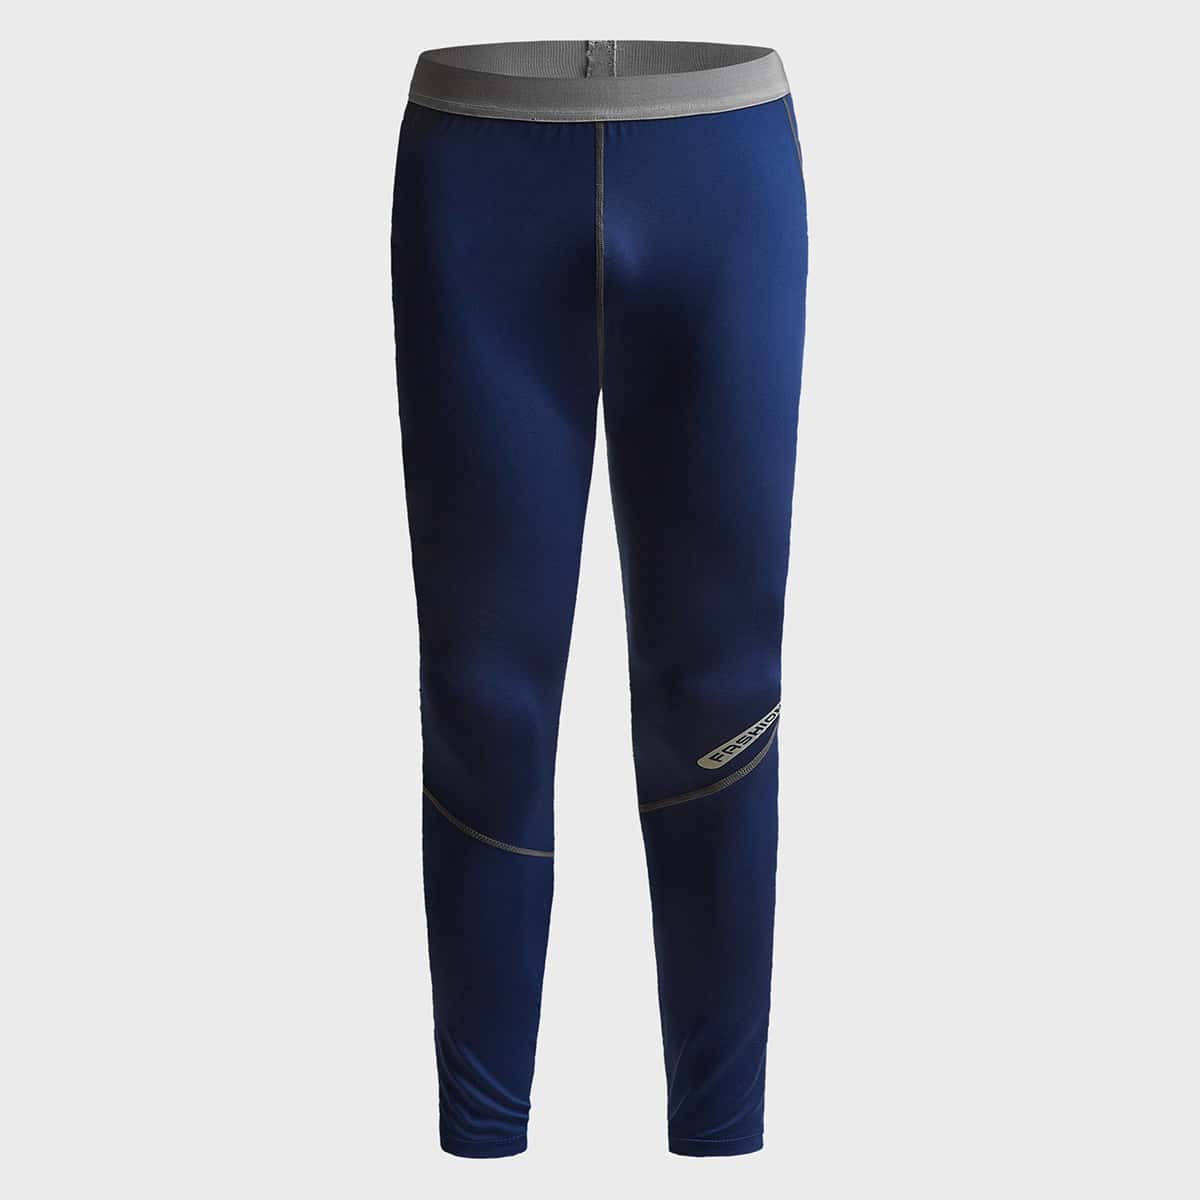 Men Letter Graphic Contrast Topstitching Sport Tights